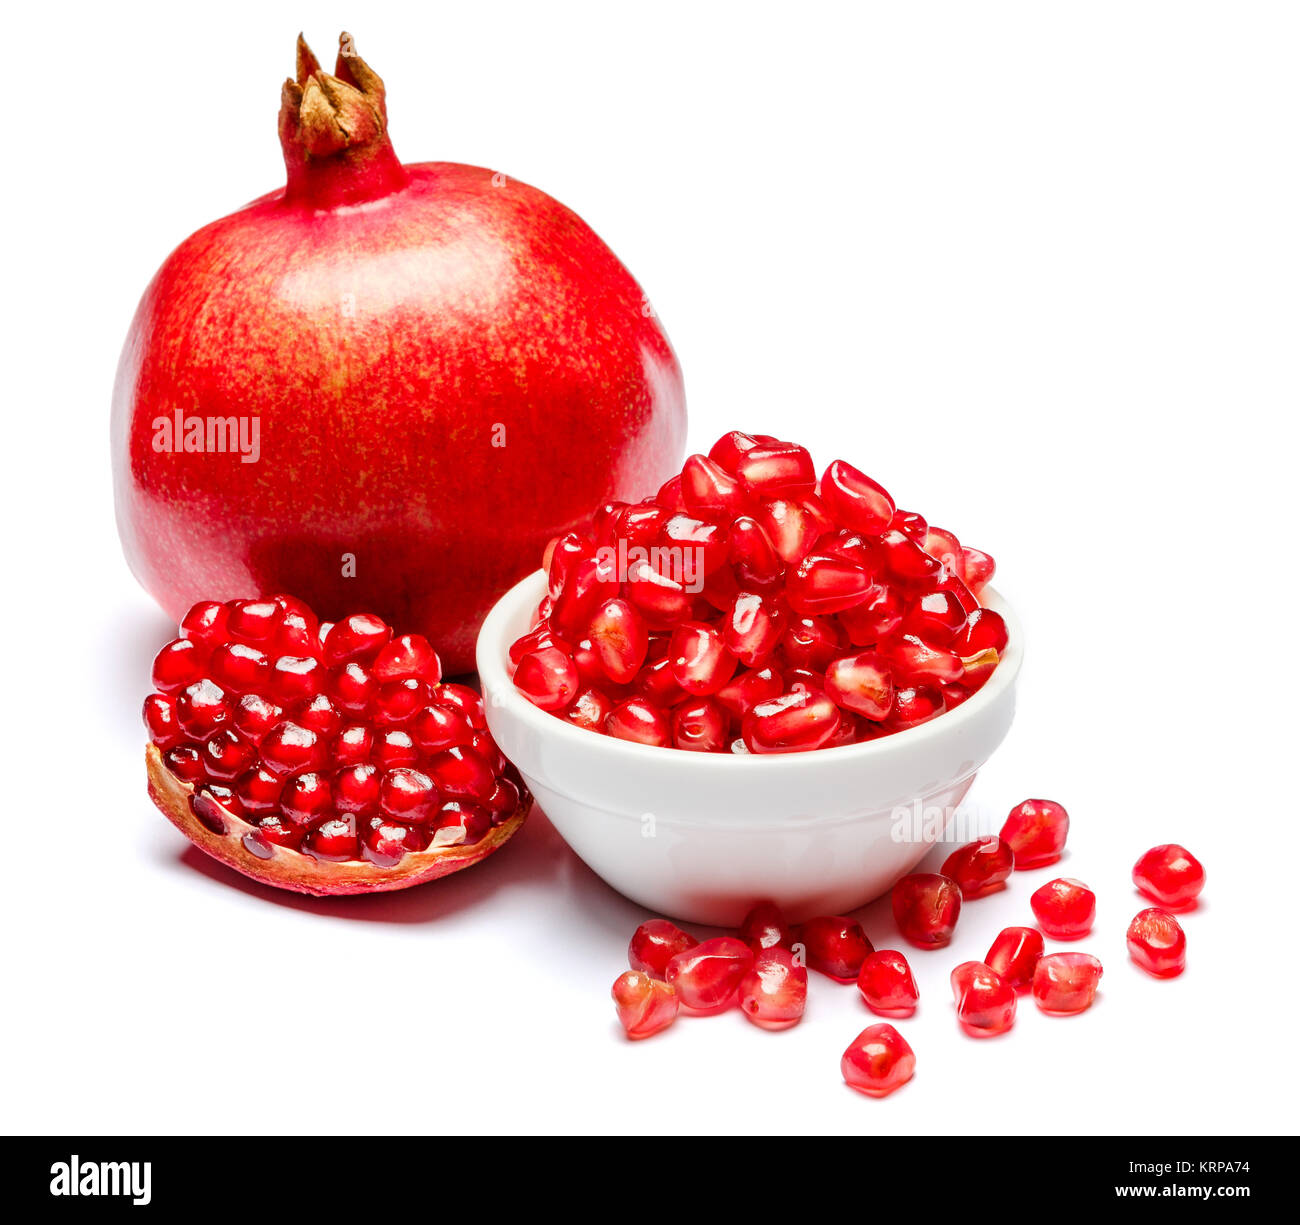 Pomegranate and seeds in ceramic bowl close-up - Stock Image